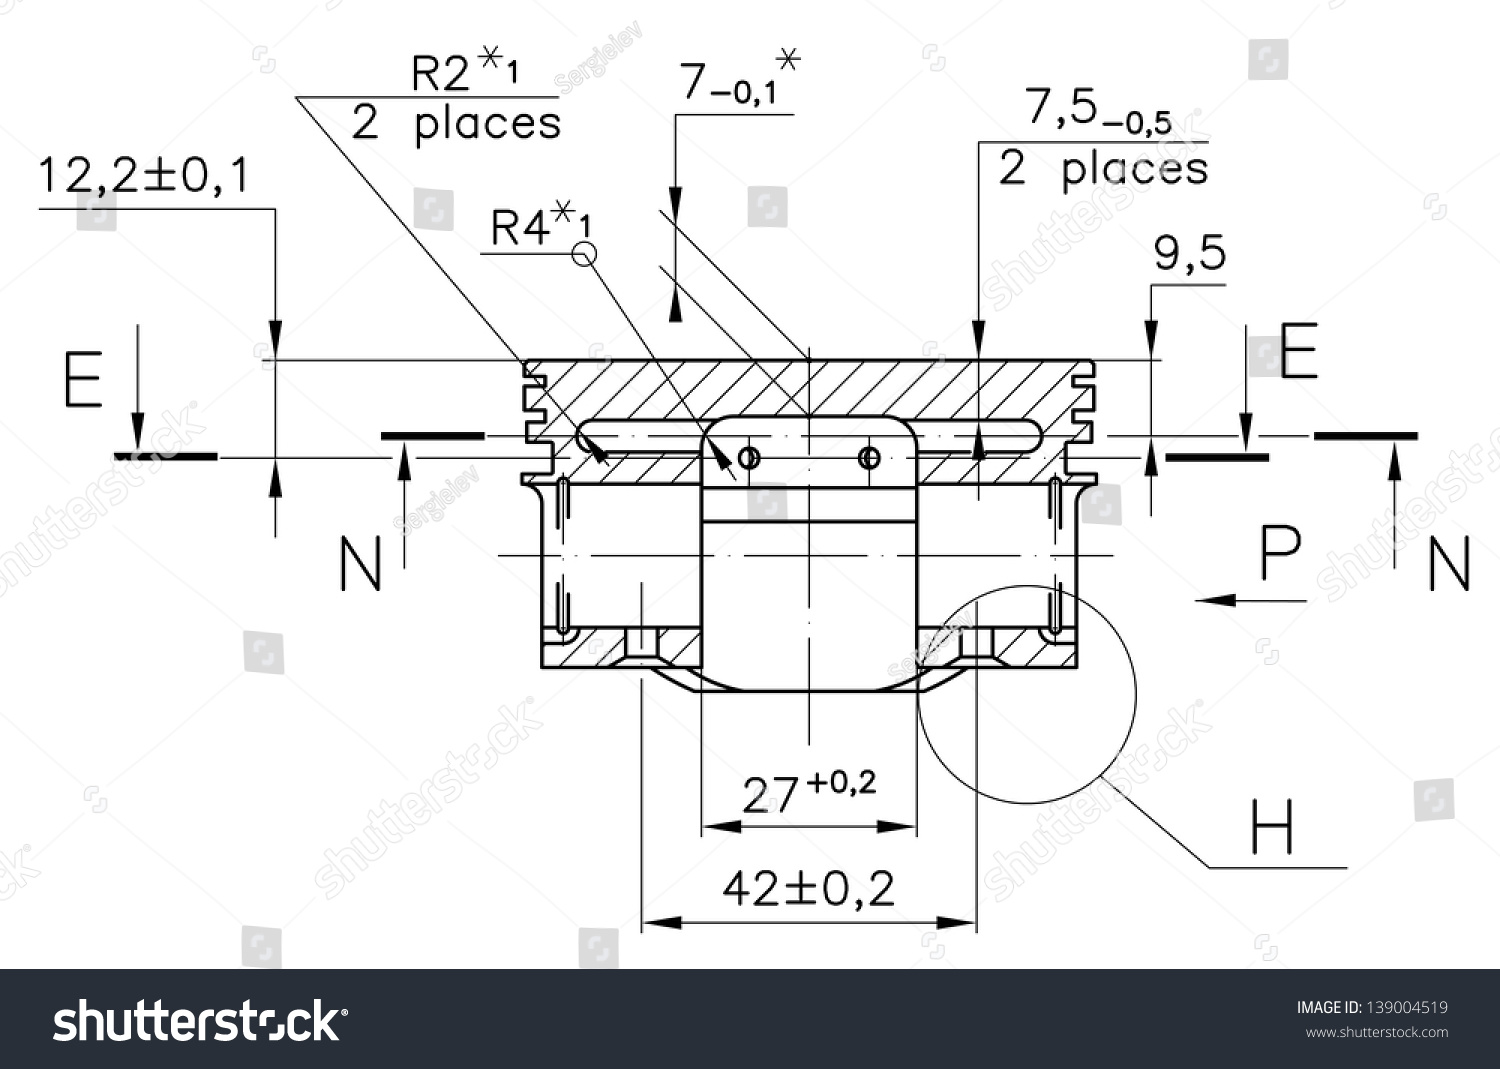 Design Drawings Nonexistent Internal Combustion Engine Stock R2 Diagram Of Piston Clipping Path